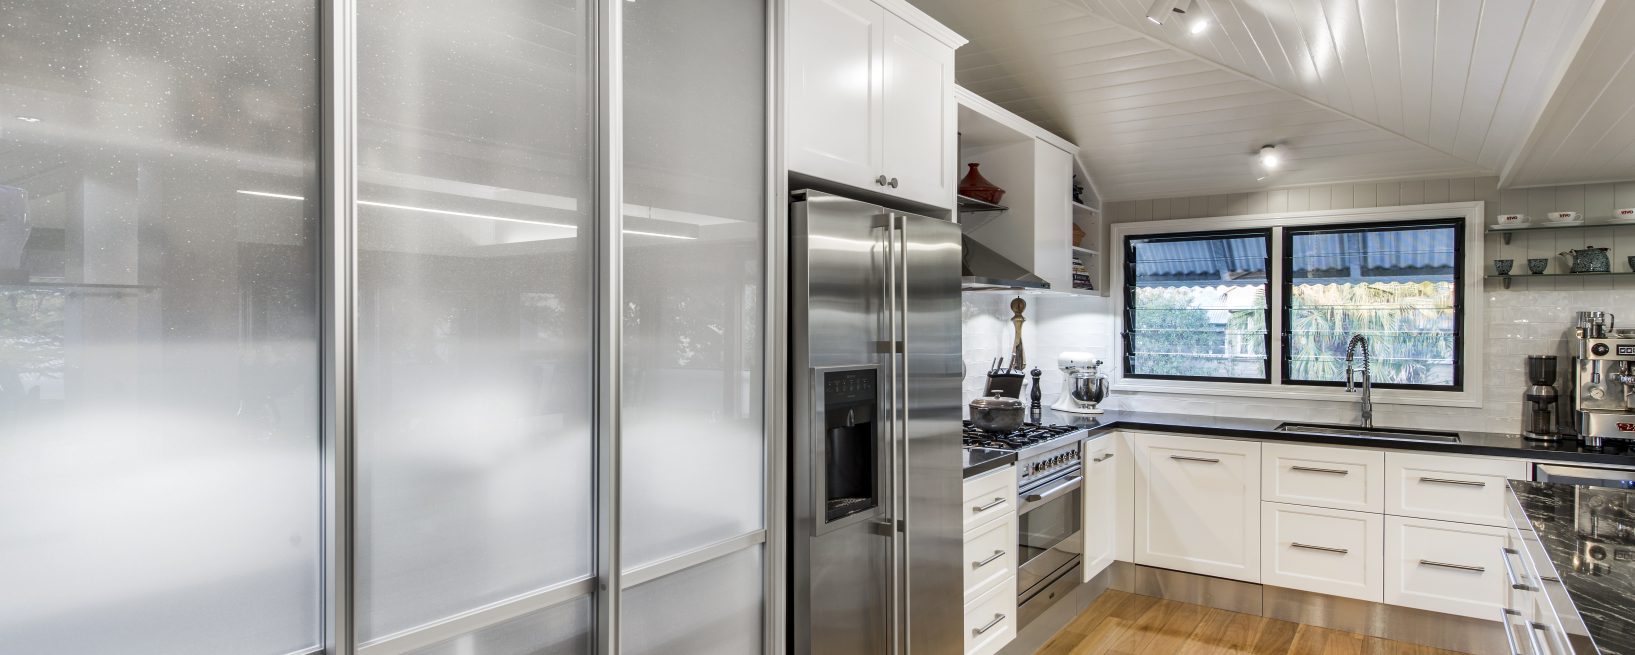 SLiding Kitchen Doos Brisbane Australia